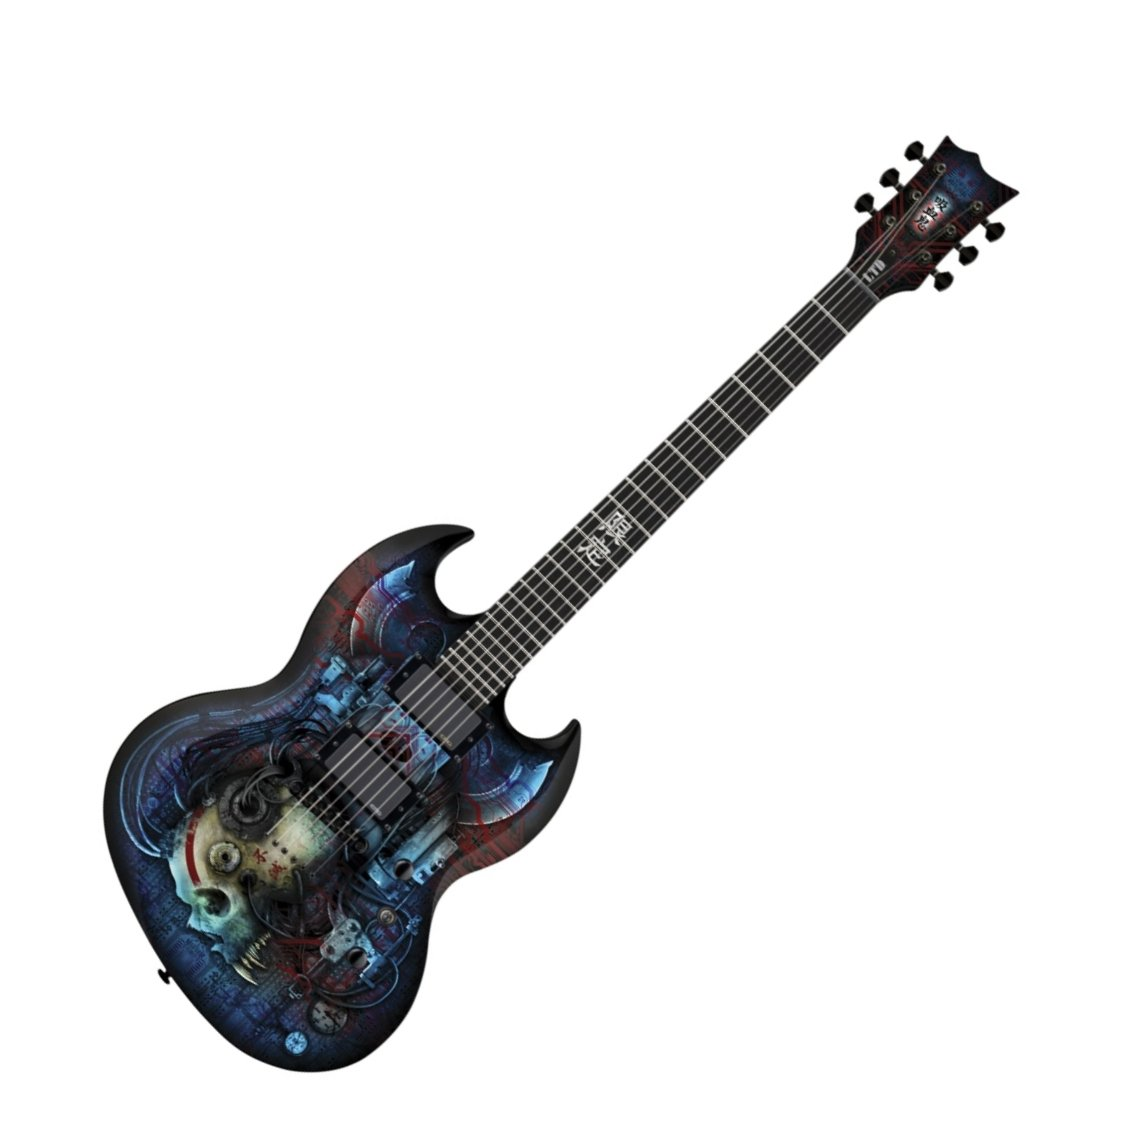 ESP LTD VIPER VAMPIRE BIO TECH Electric Guitar Graphic Series with Bio-Tech Black Finish